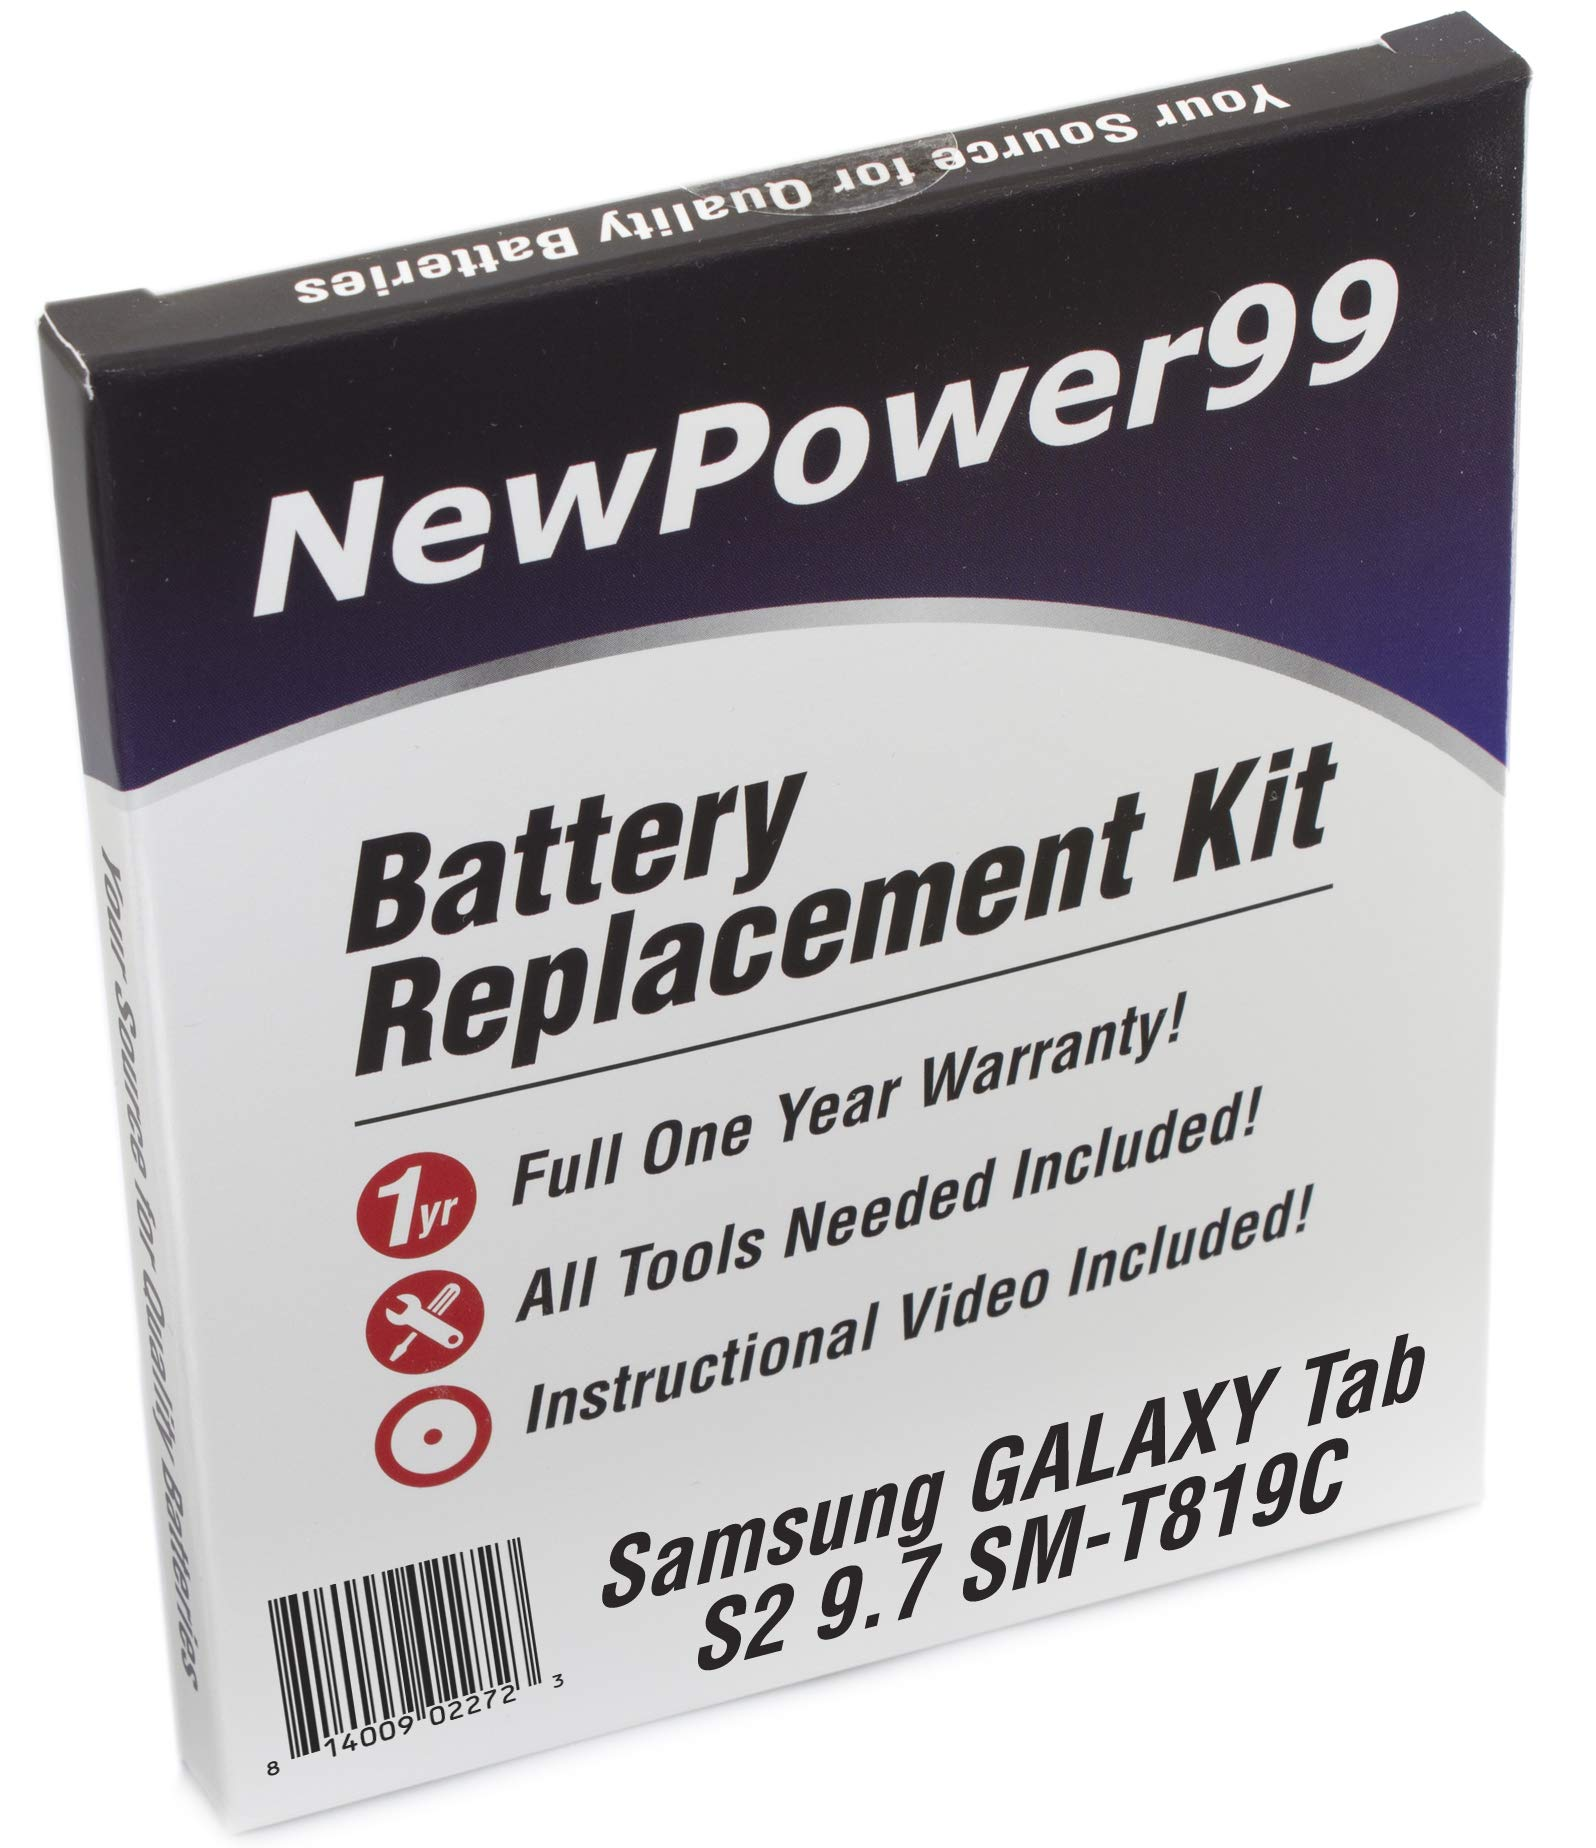 NewPower99 Battery Replacement Kit with Battery, Video Instructions and Tools for Samsung Galaxy Tab S2 9.7 SM-T819C by NewPower99